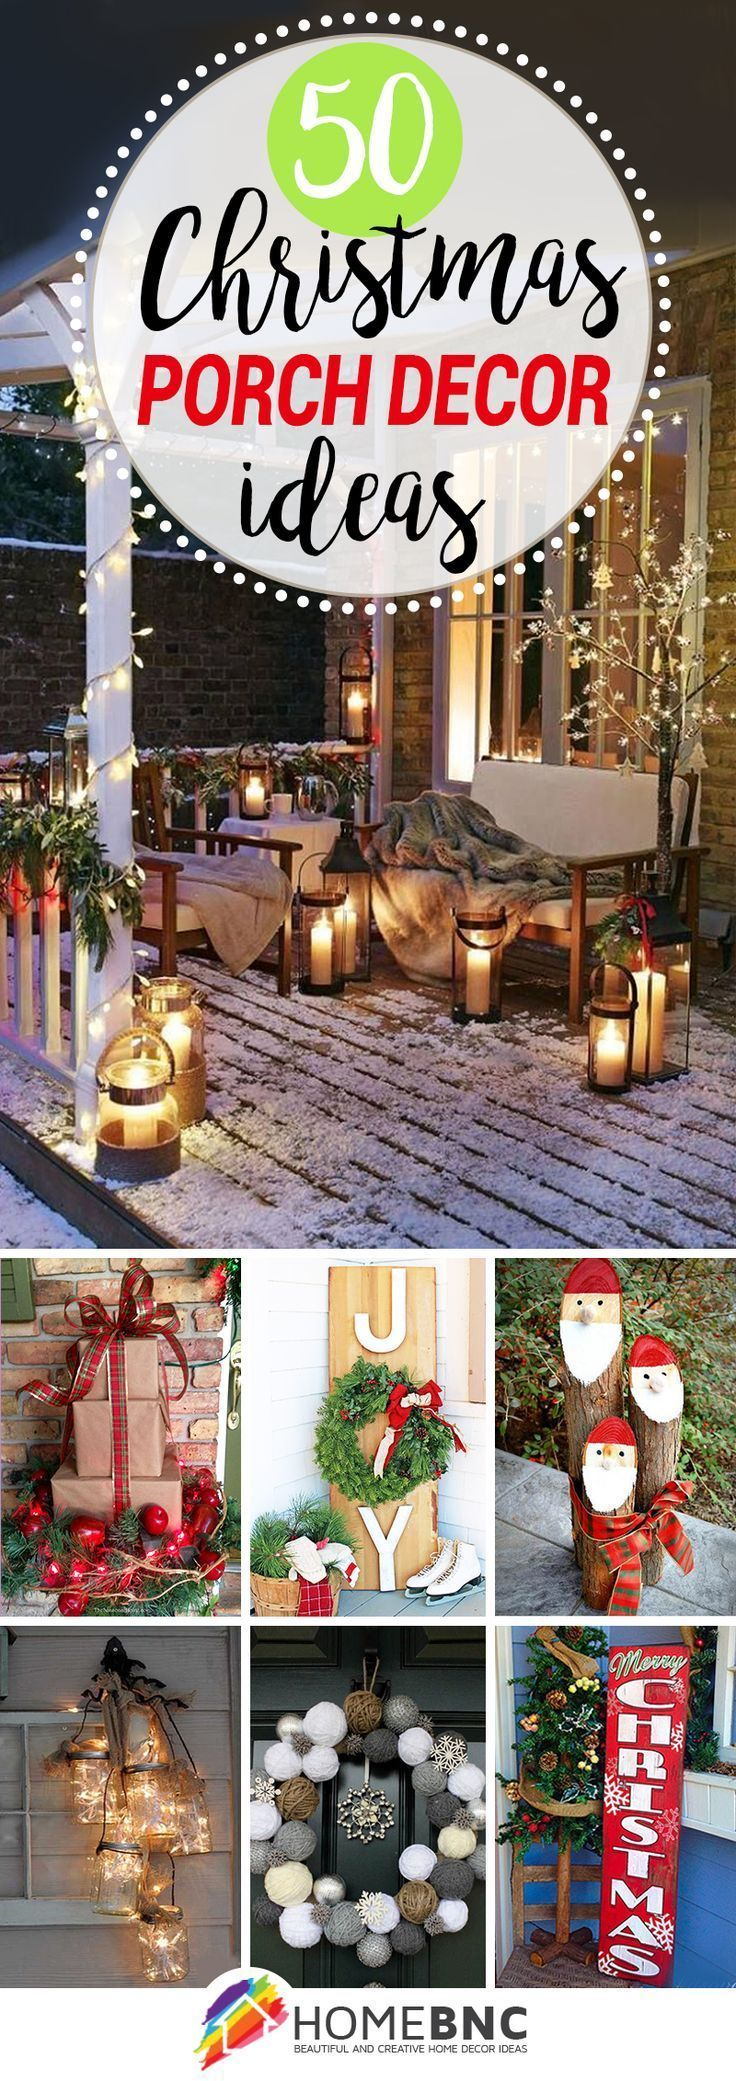 Christmas Porch Decorations 50 Fun and Festive